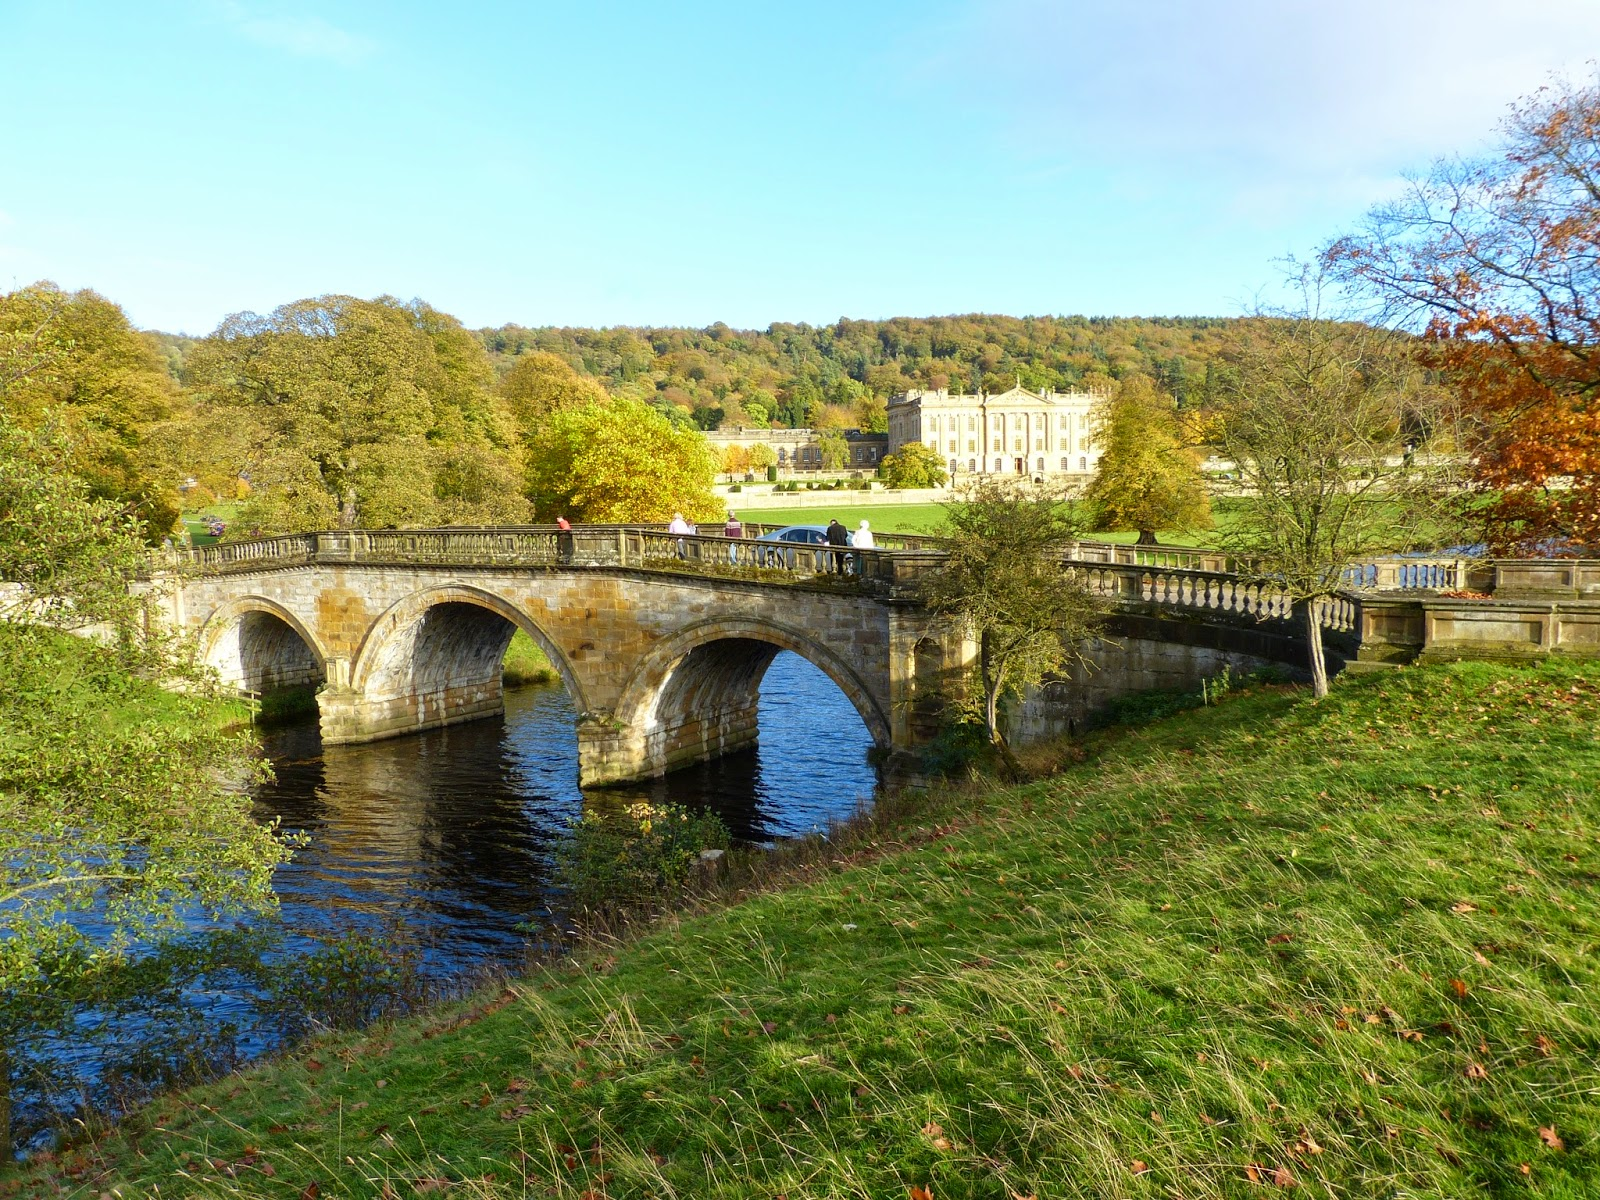 Chatsworth from across the river with Paine's bridge